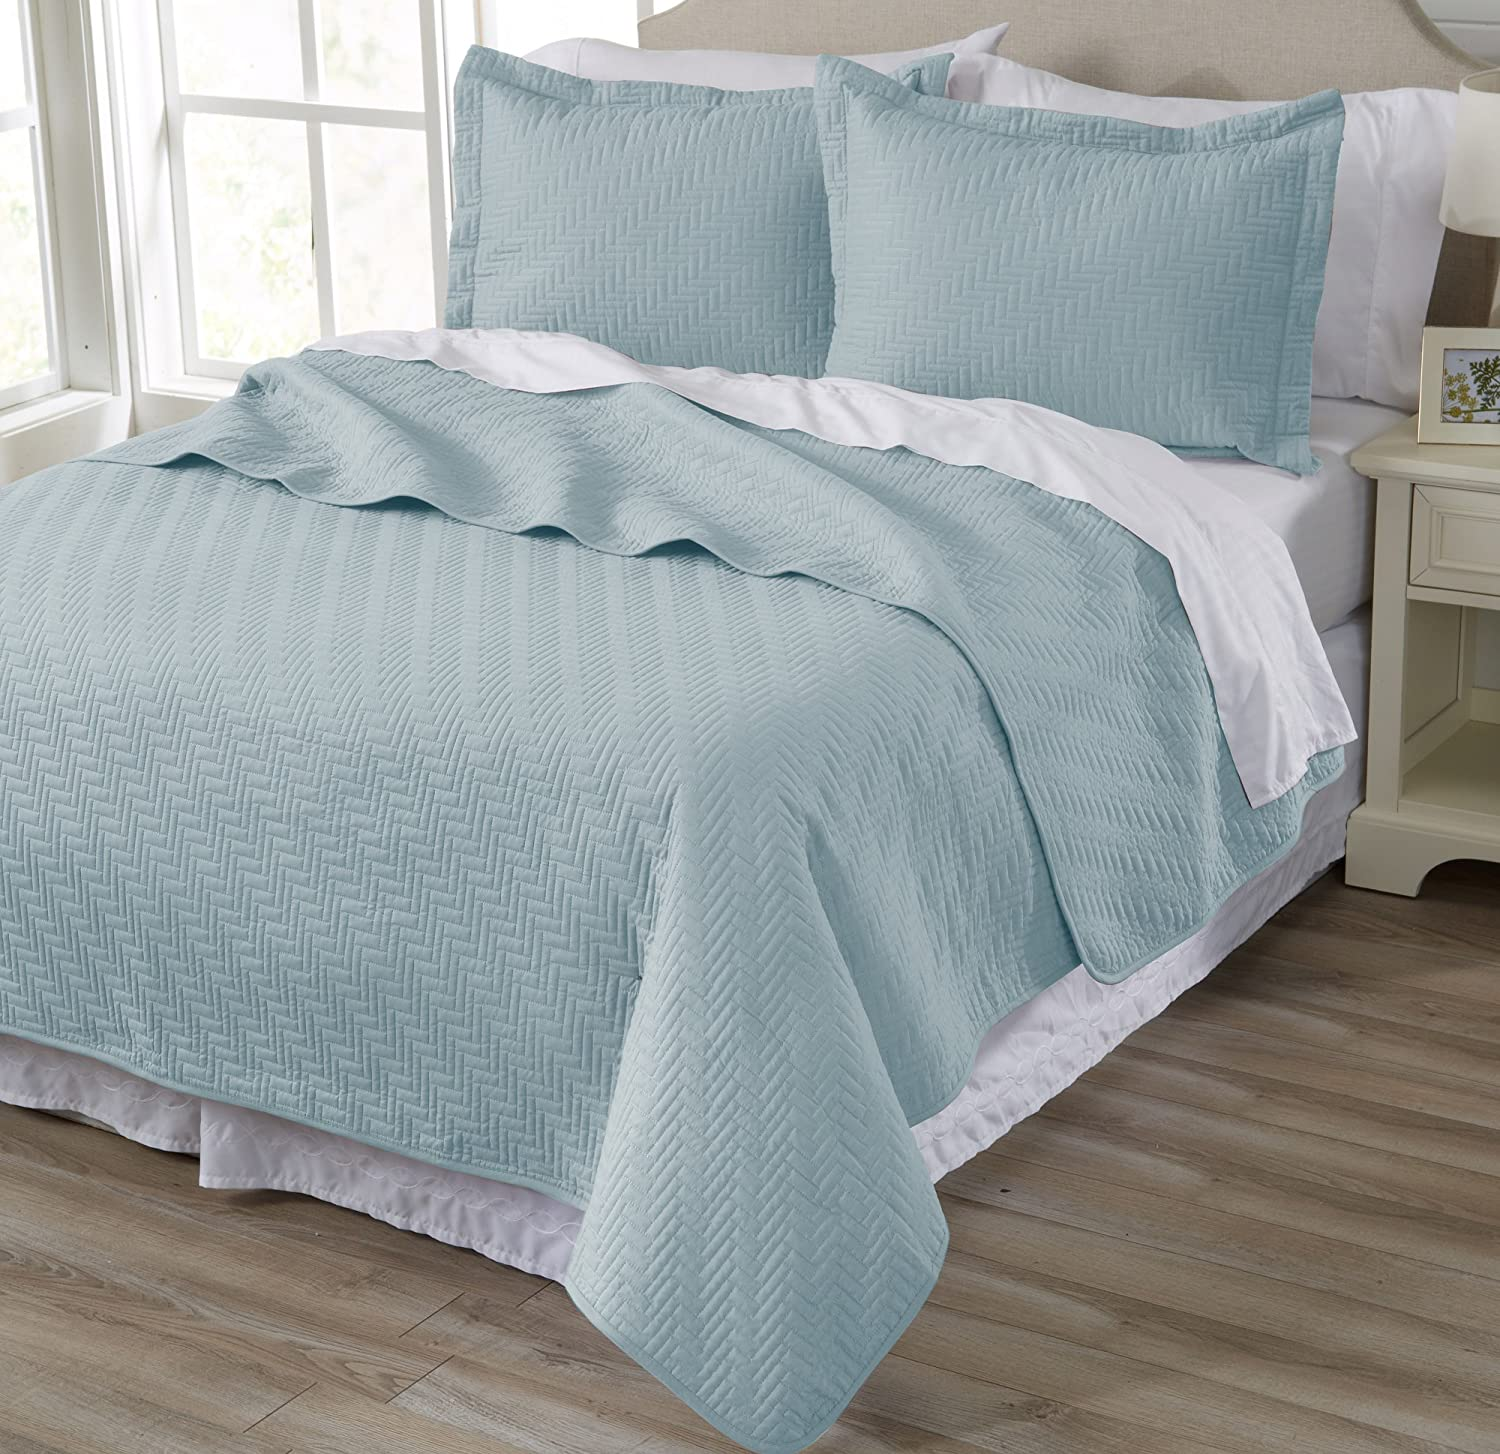 Home Fashion Designs 3-Piece All Season Quilt Set. Full/Queen Size Quilt with 2 Shams. Soft Microfiber Bedspread and Coverlet. Emerson Collection (Cloud Blue)